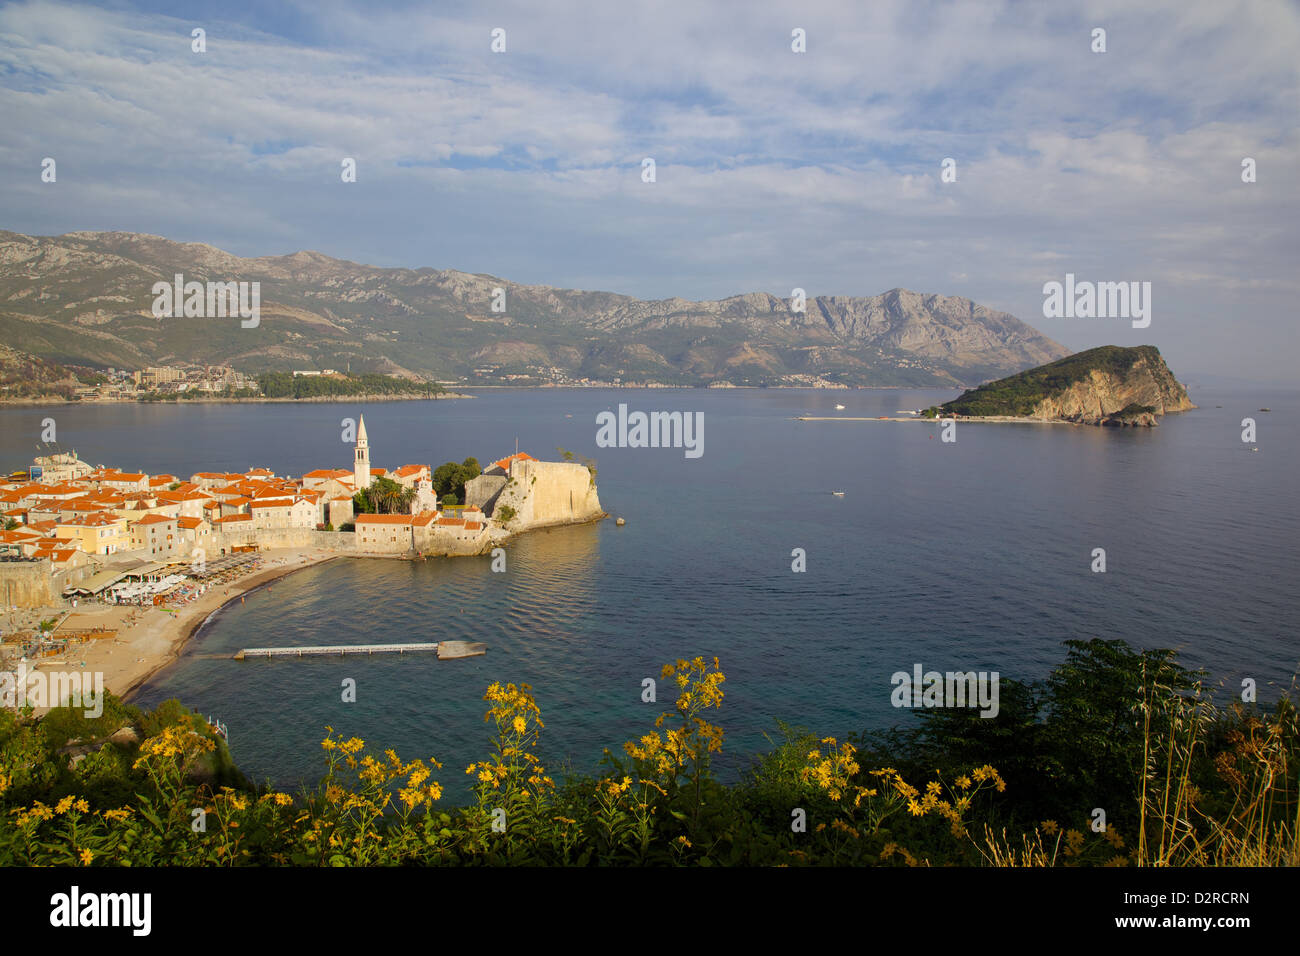 View of Old Town, Budva, Montenegro, Europe - Stock Image